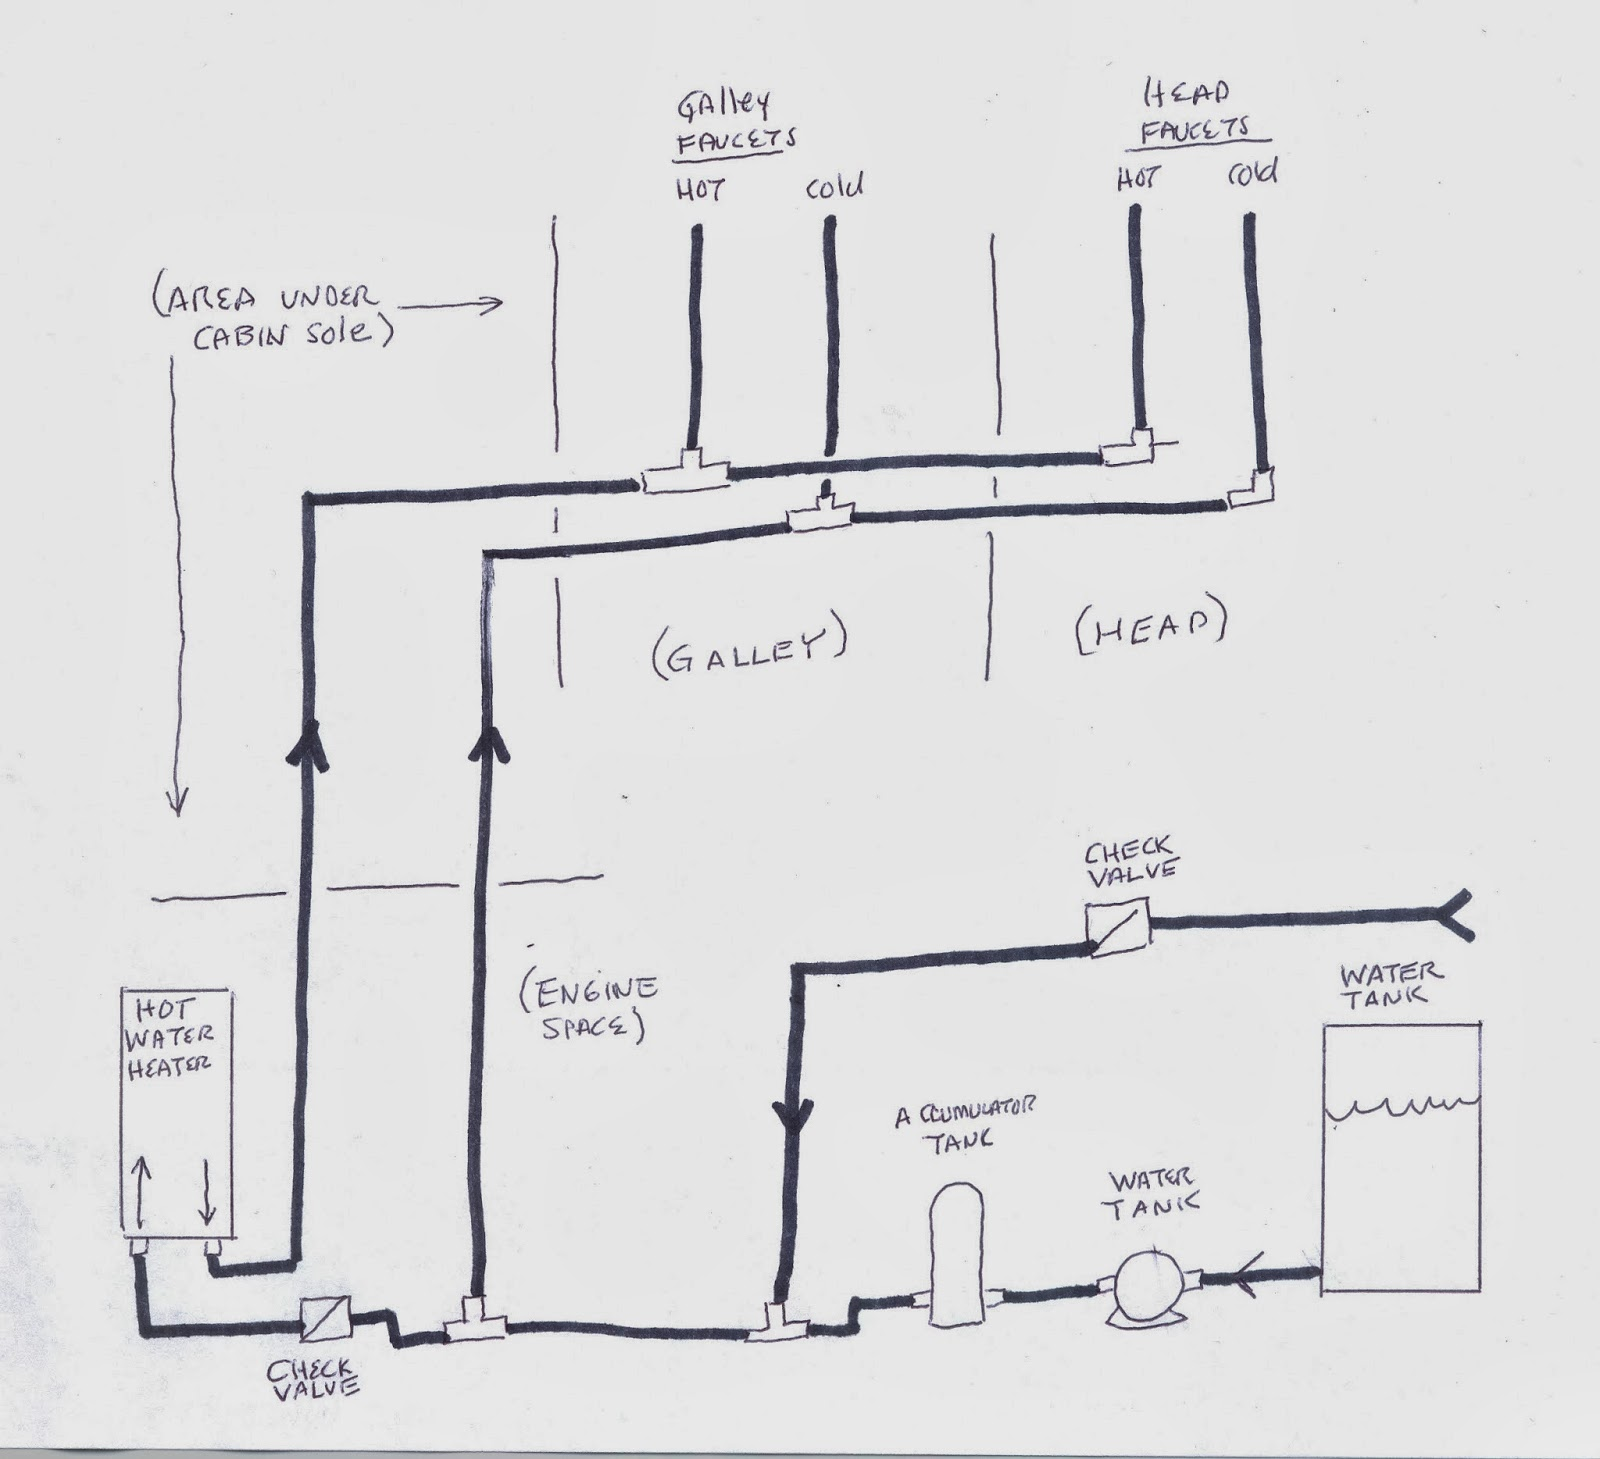 A C Piping Diagram